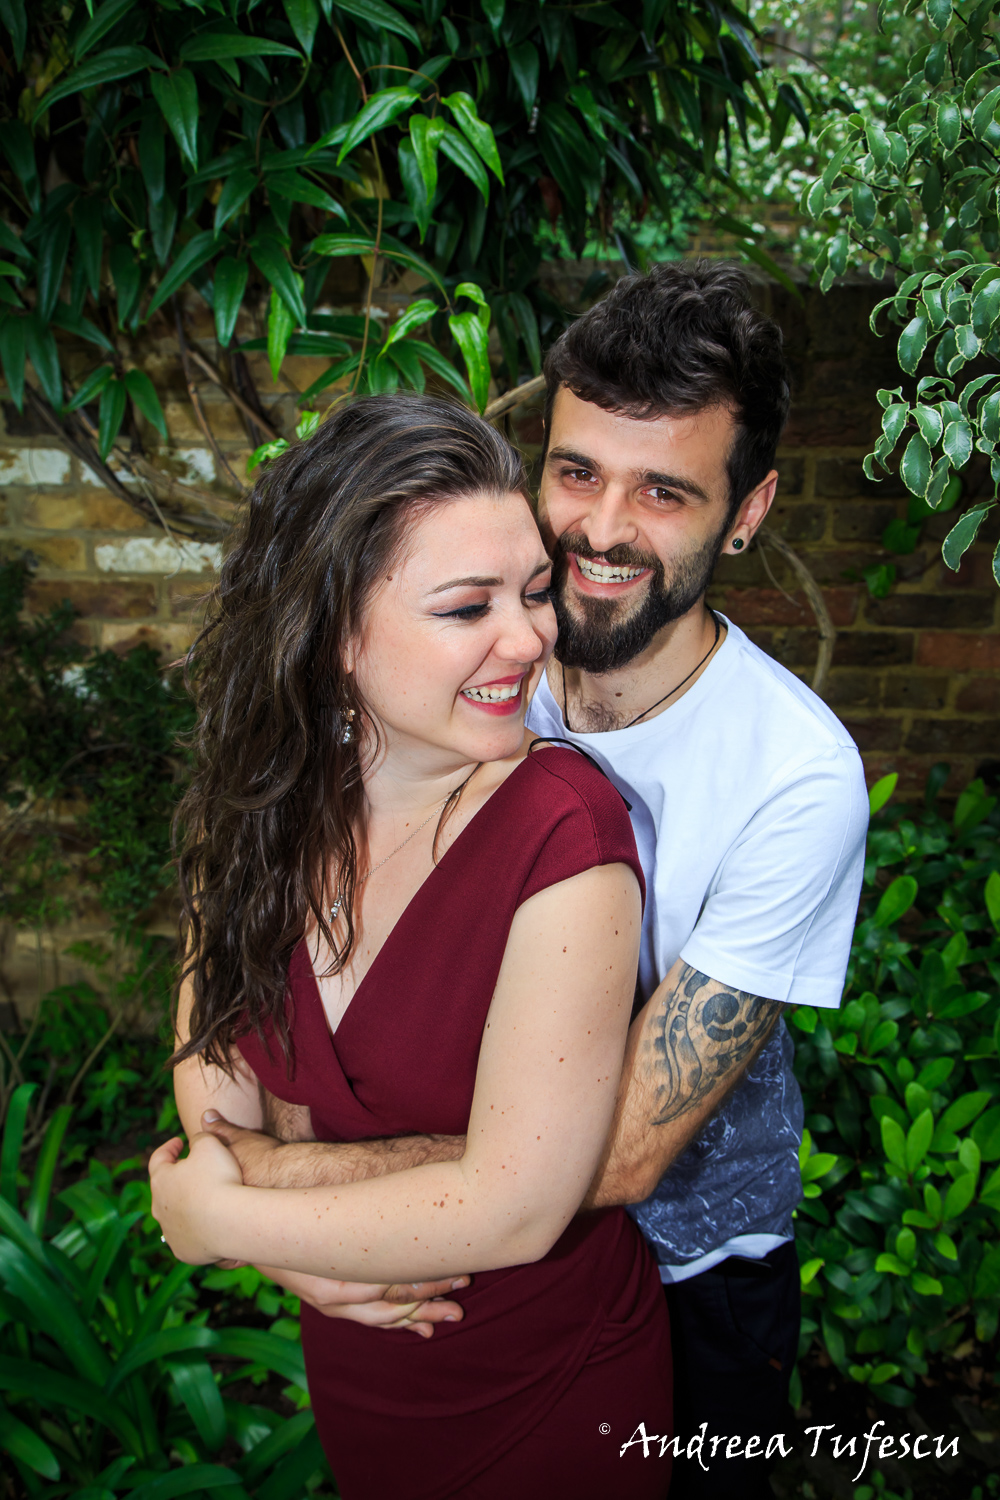 Wedding and Engagement Photography by Andreea Tufescu - L & D Engagement - PreWedding Photoshoot West London Chiswick